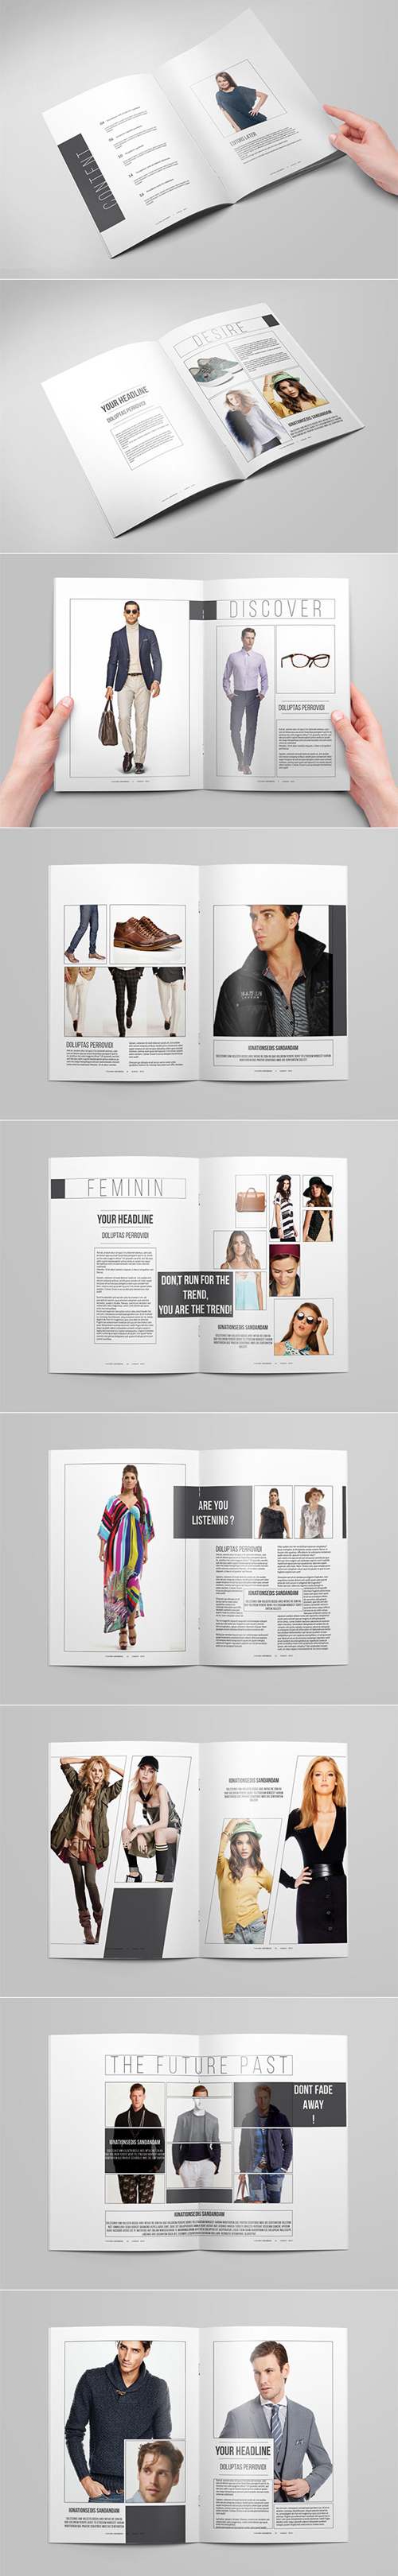 Fashion Catalog / Brochure Template